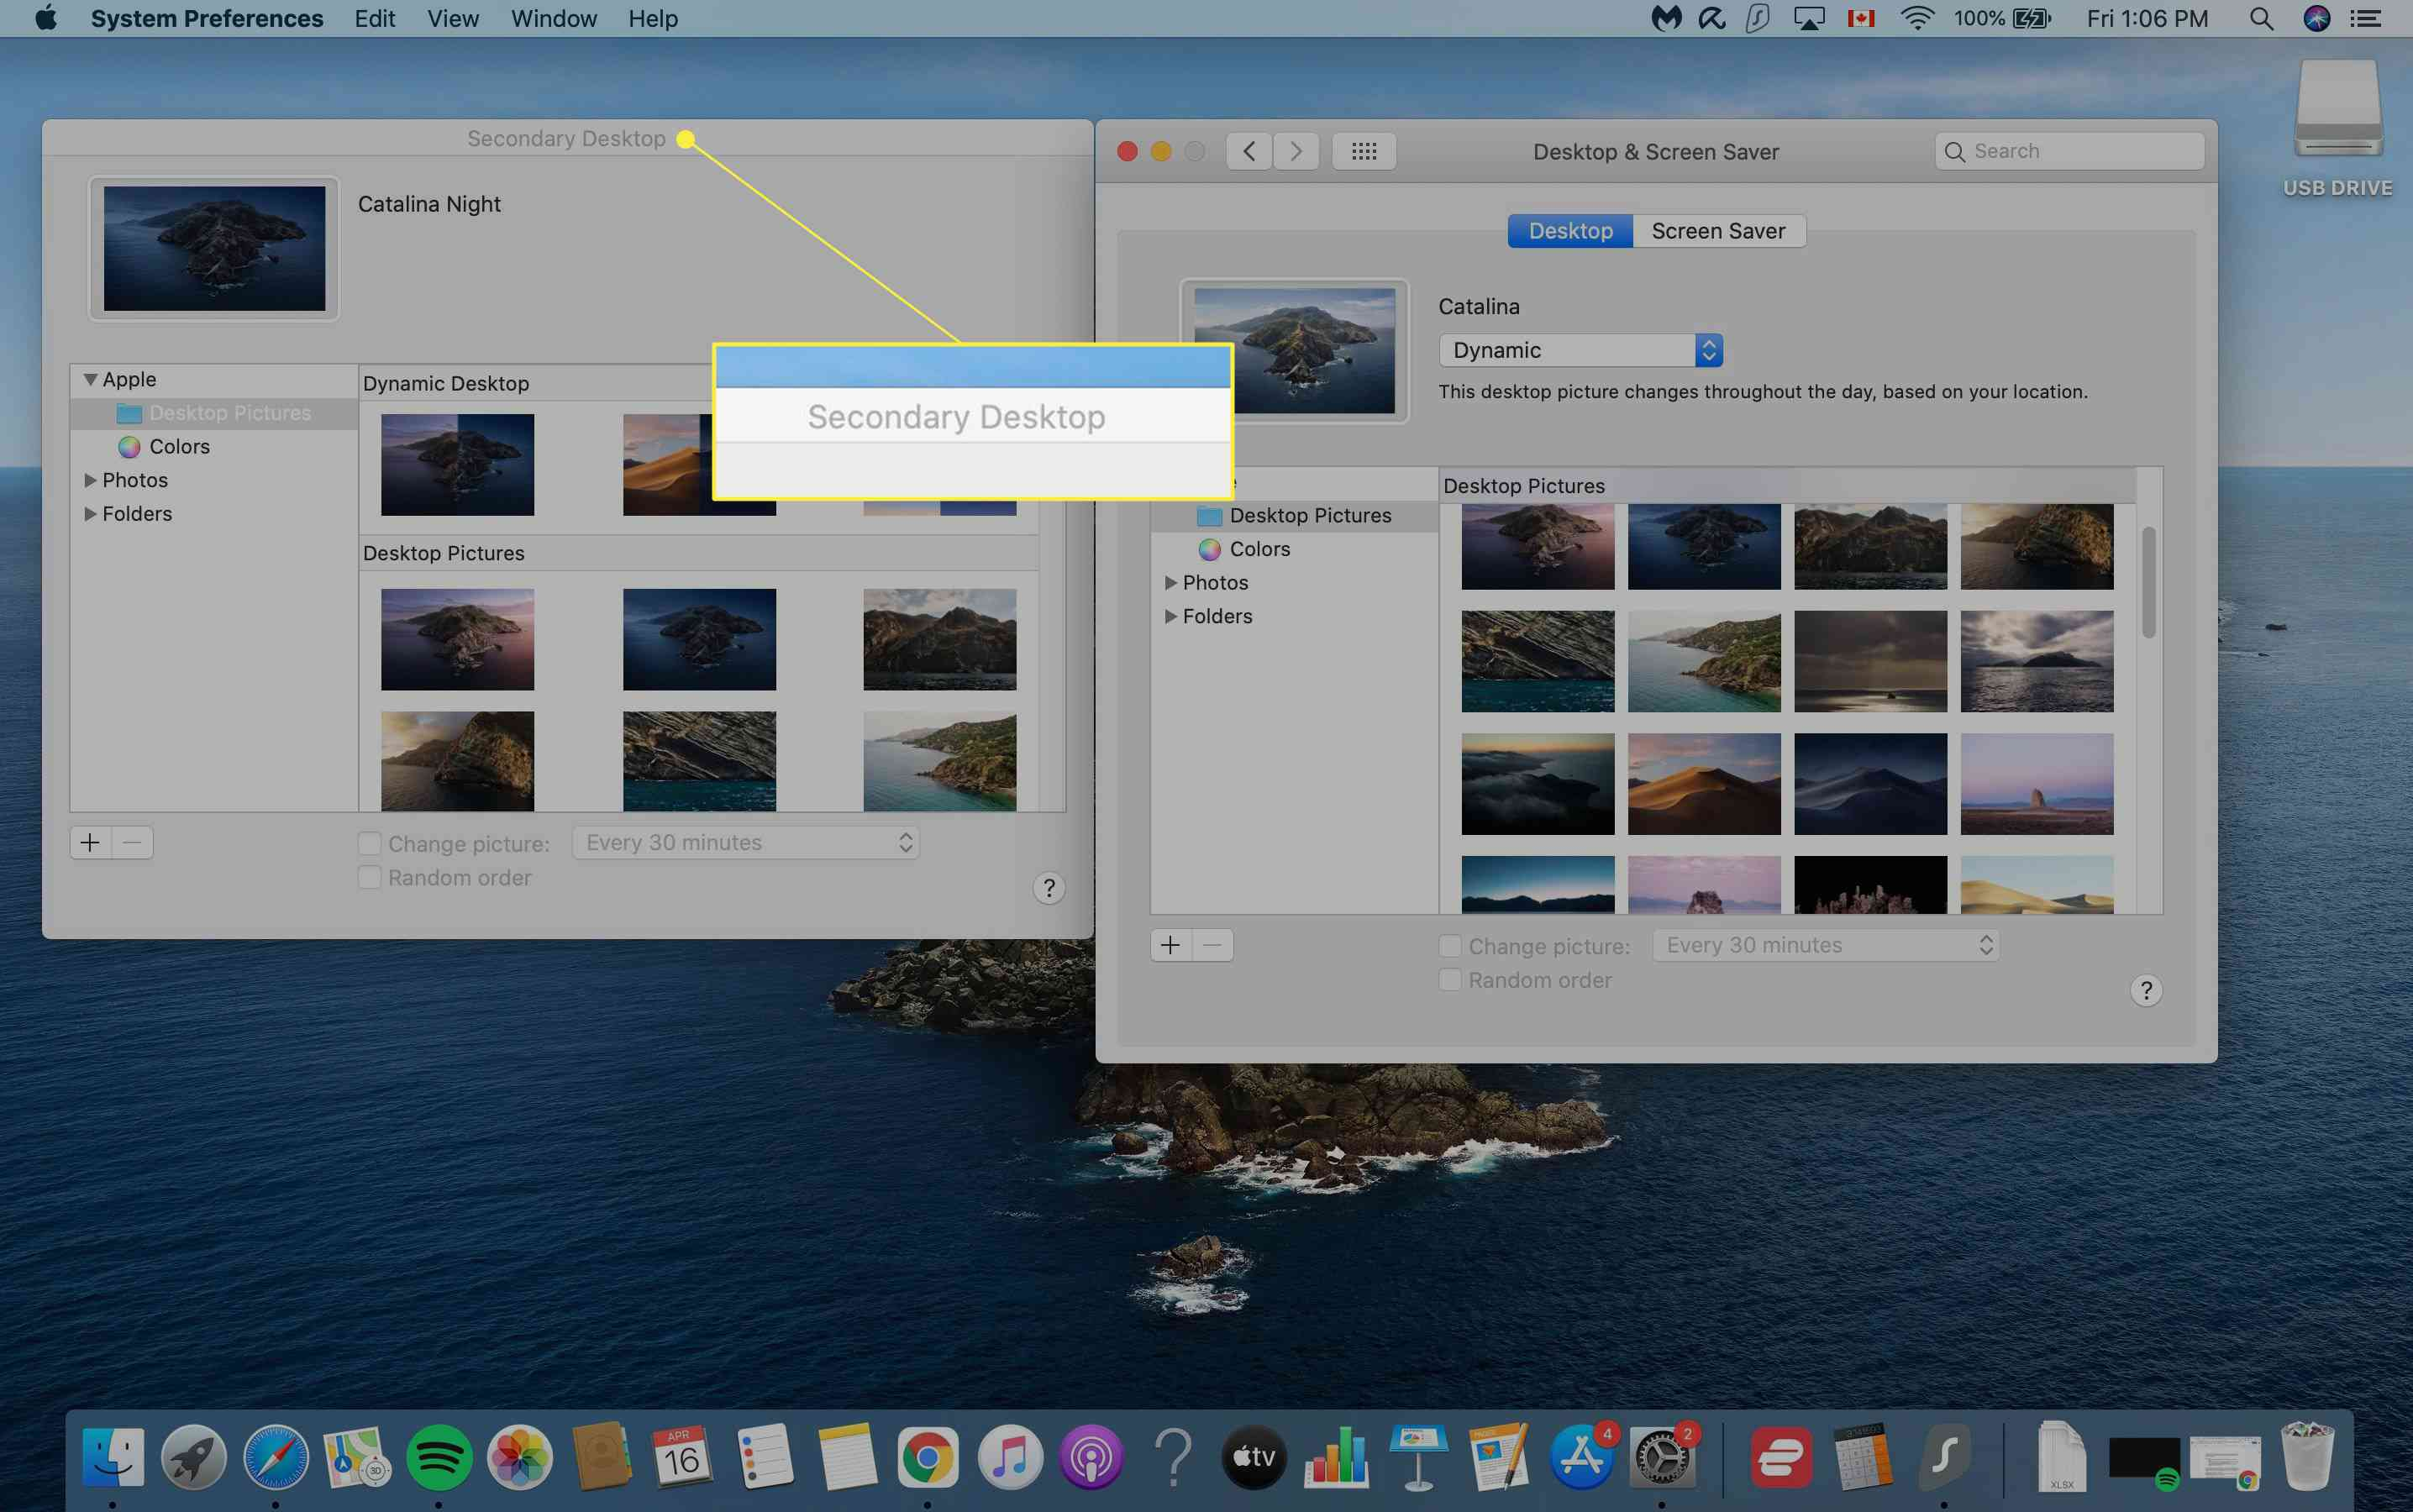 Mac background image selection window with